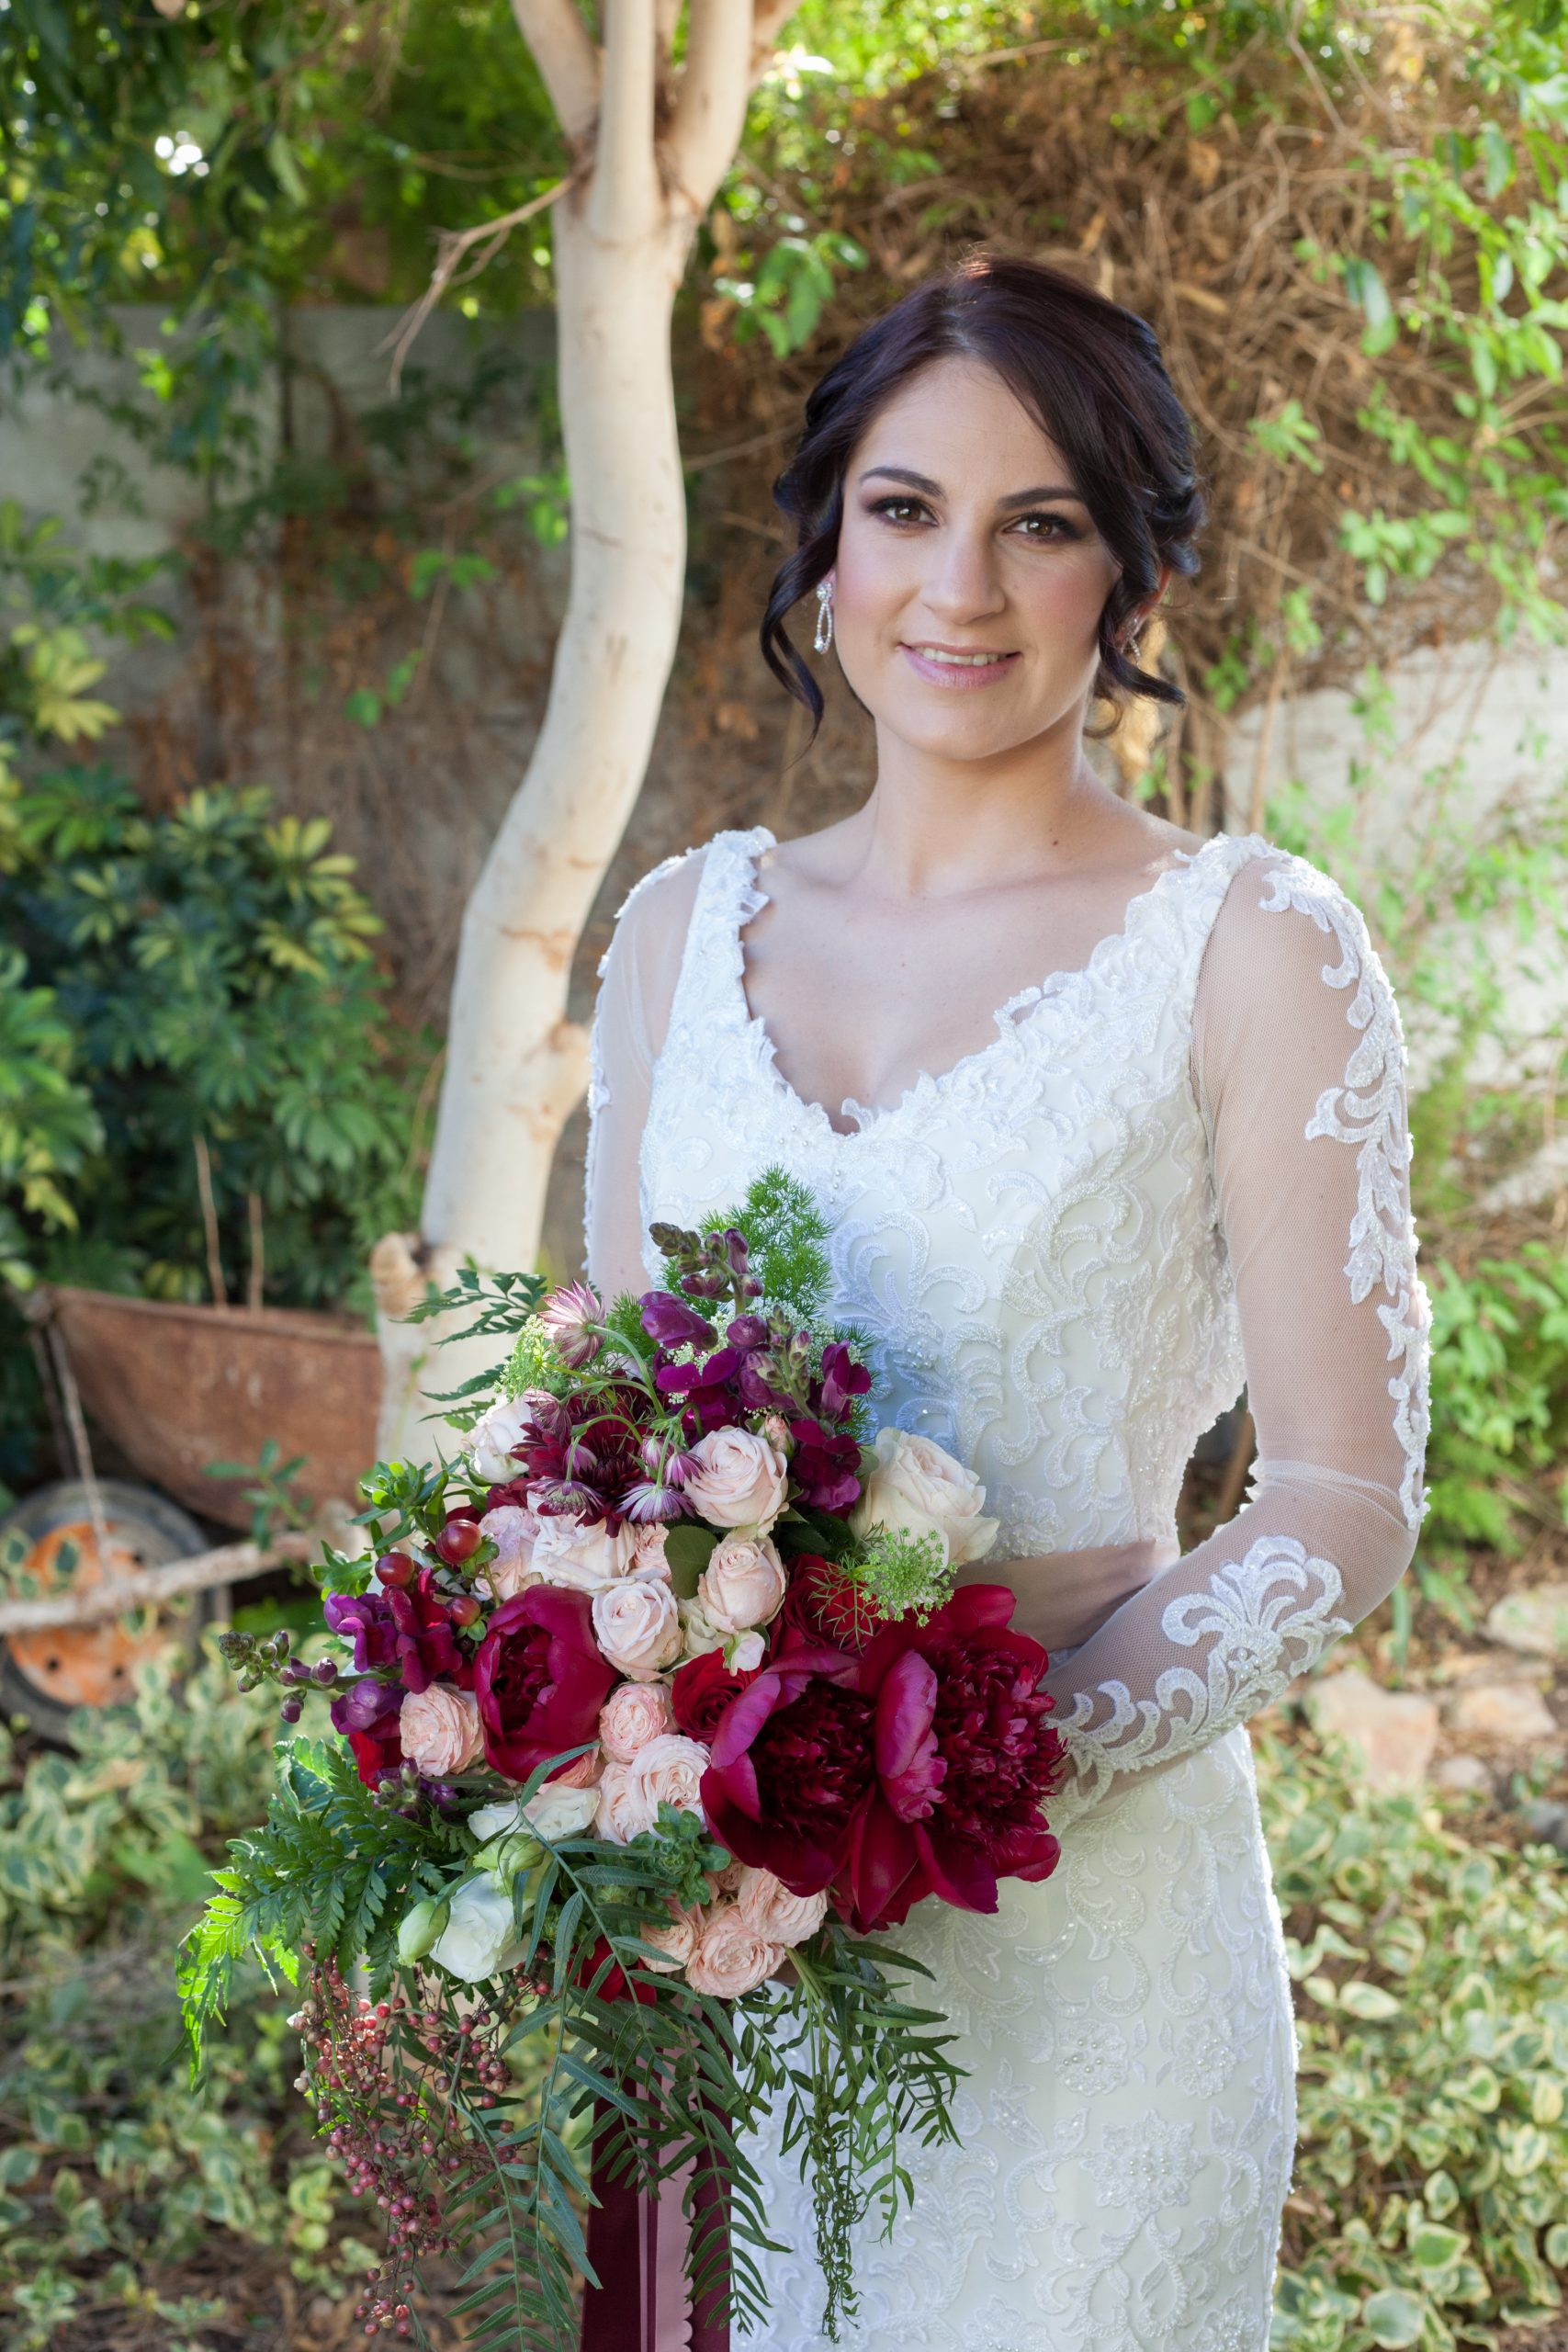 Veautiful Bride Holding Her Bridal Bouquet scaled